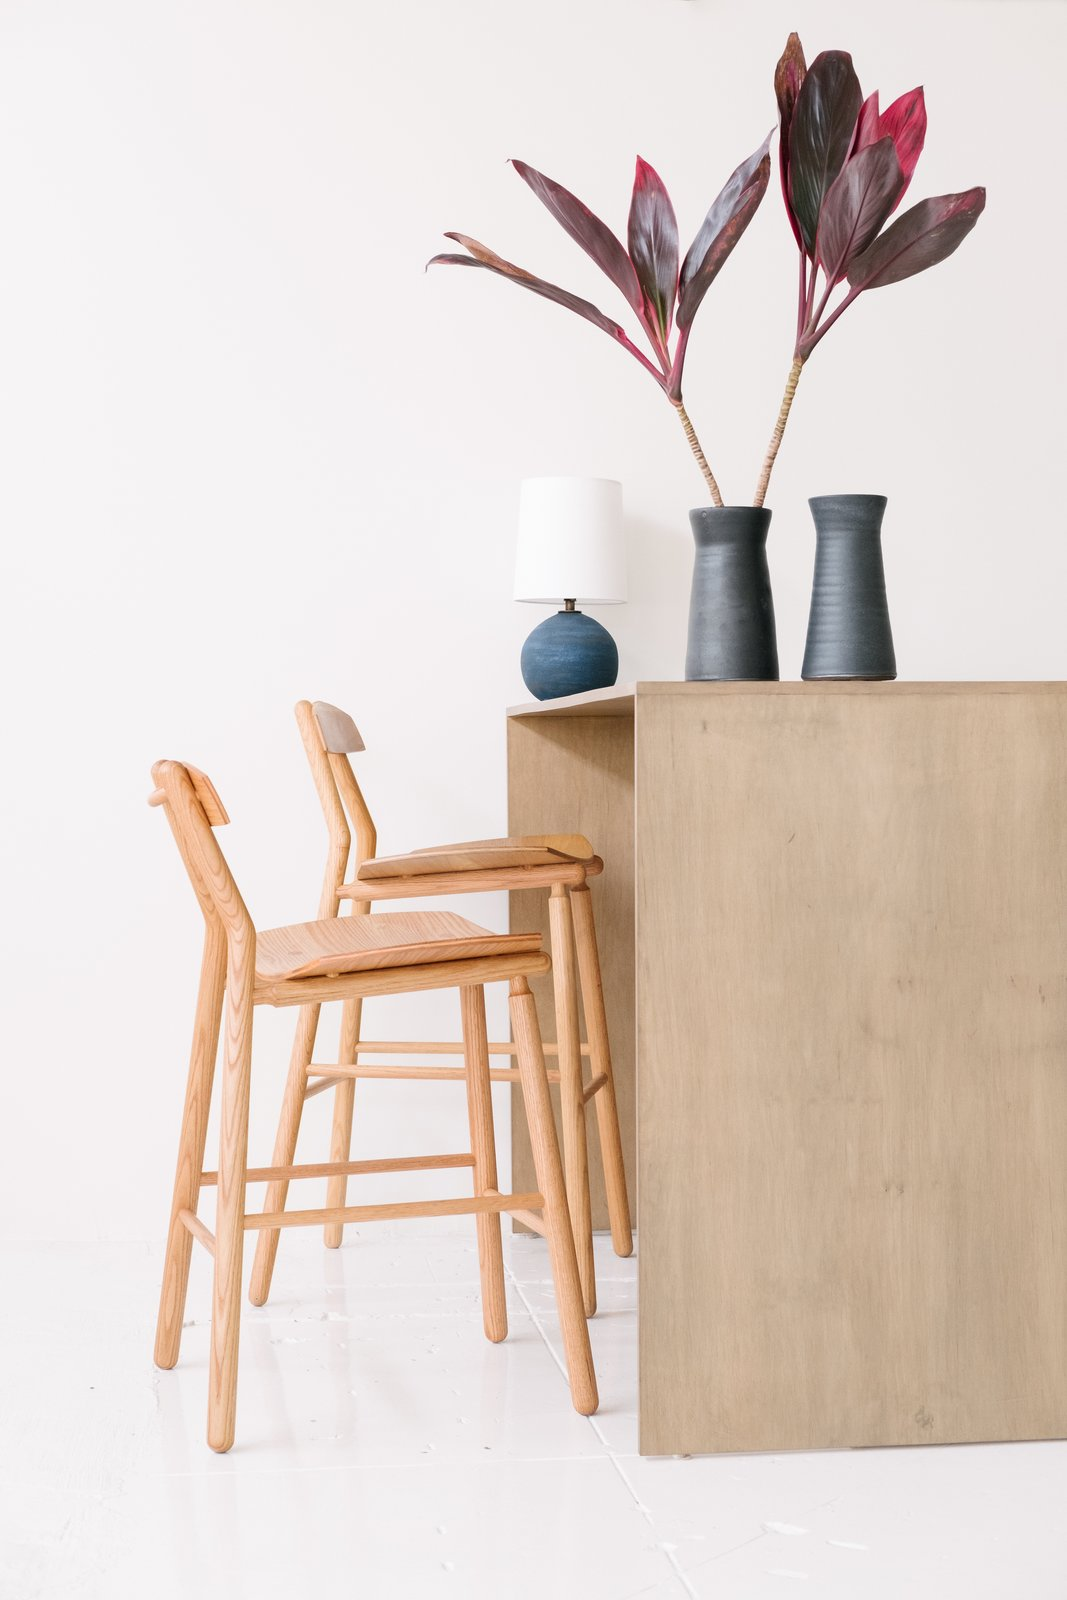 Furniture from De Jong & Co.  Photo 5 of 12 in The Carefully-Curated Spartan Shop Expands Into a Creative Consultancy